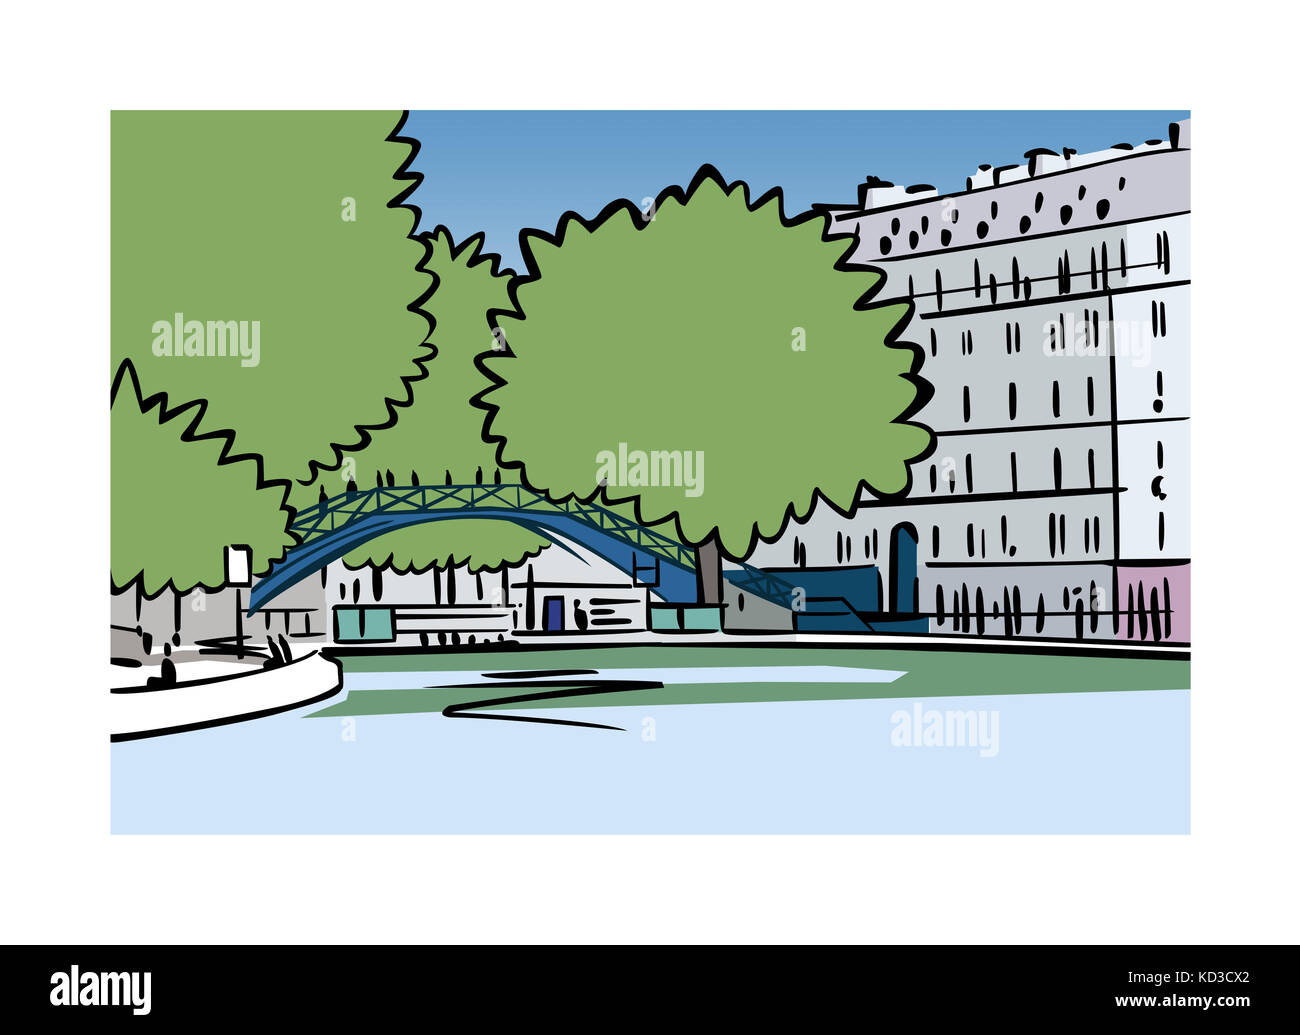 Illustration of Canal Saint-Martin in Paris, France - Stock Image